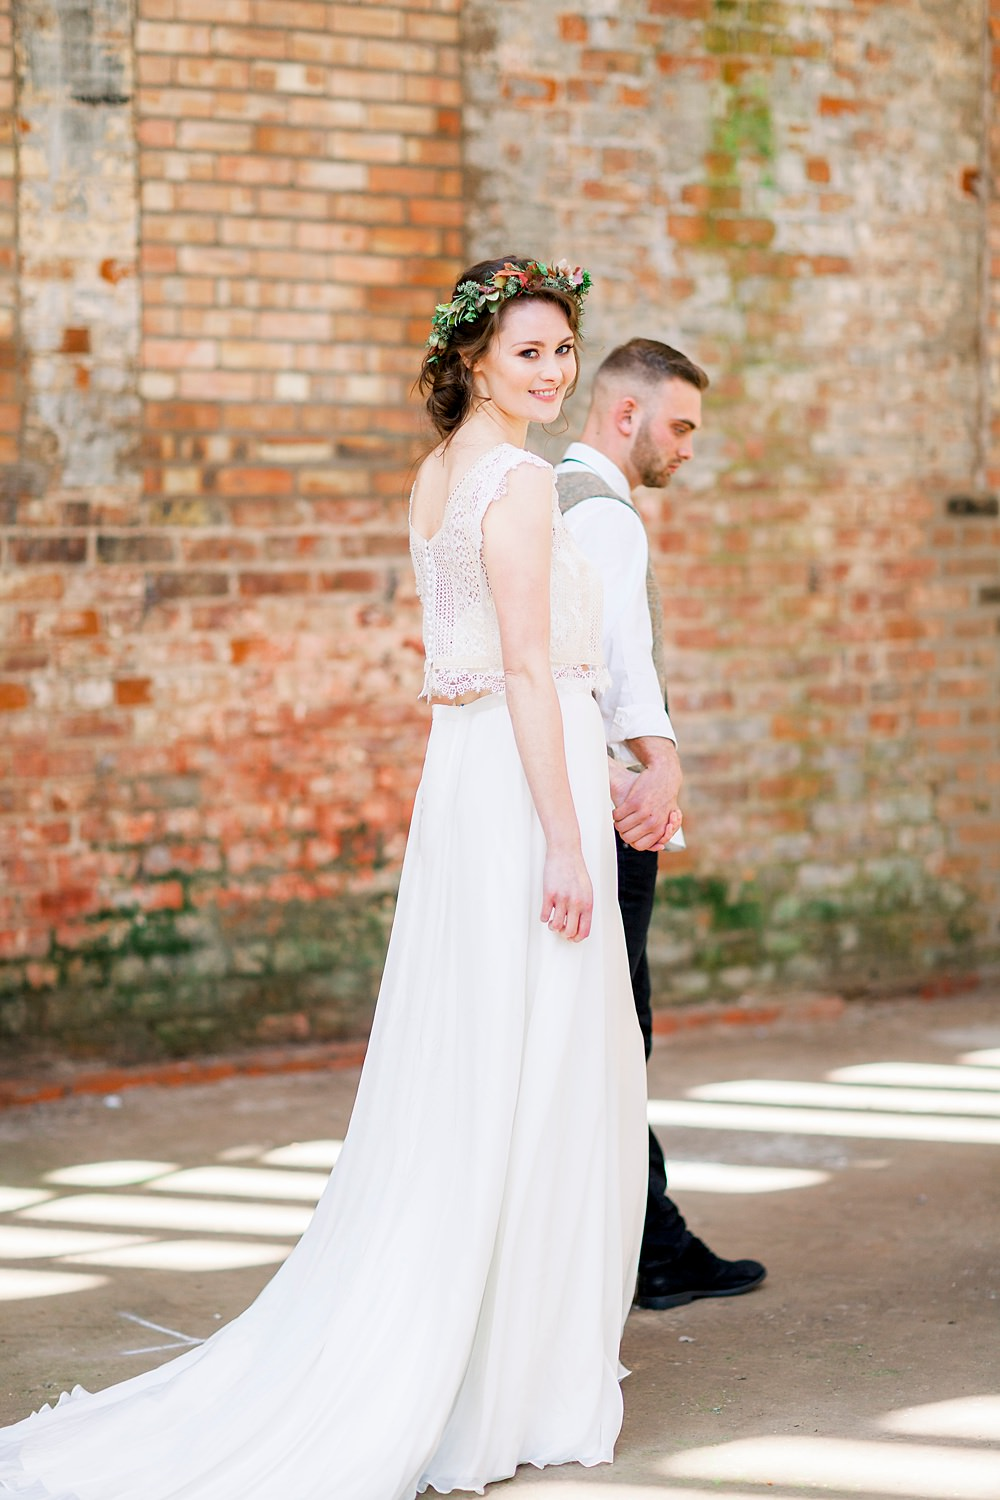 Dress Gown Bride Bridal Stelfox Bride Lace Top Skirt Natural Boho Industrial Wedding Ideas Jo Bradbury Photography